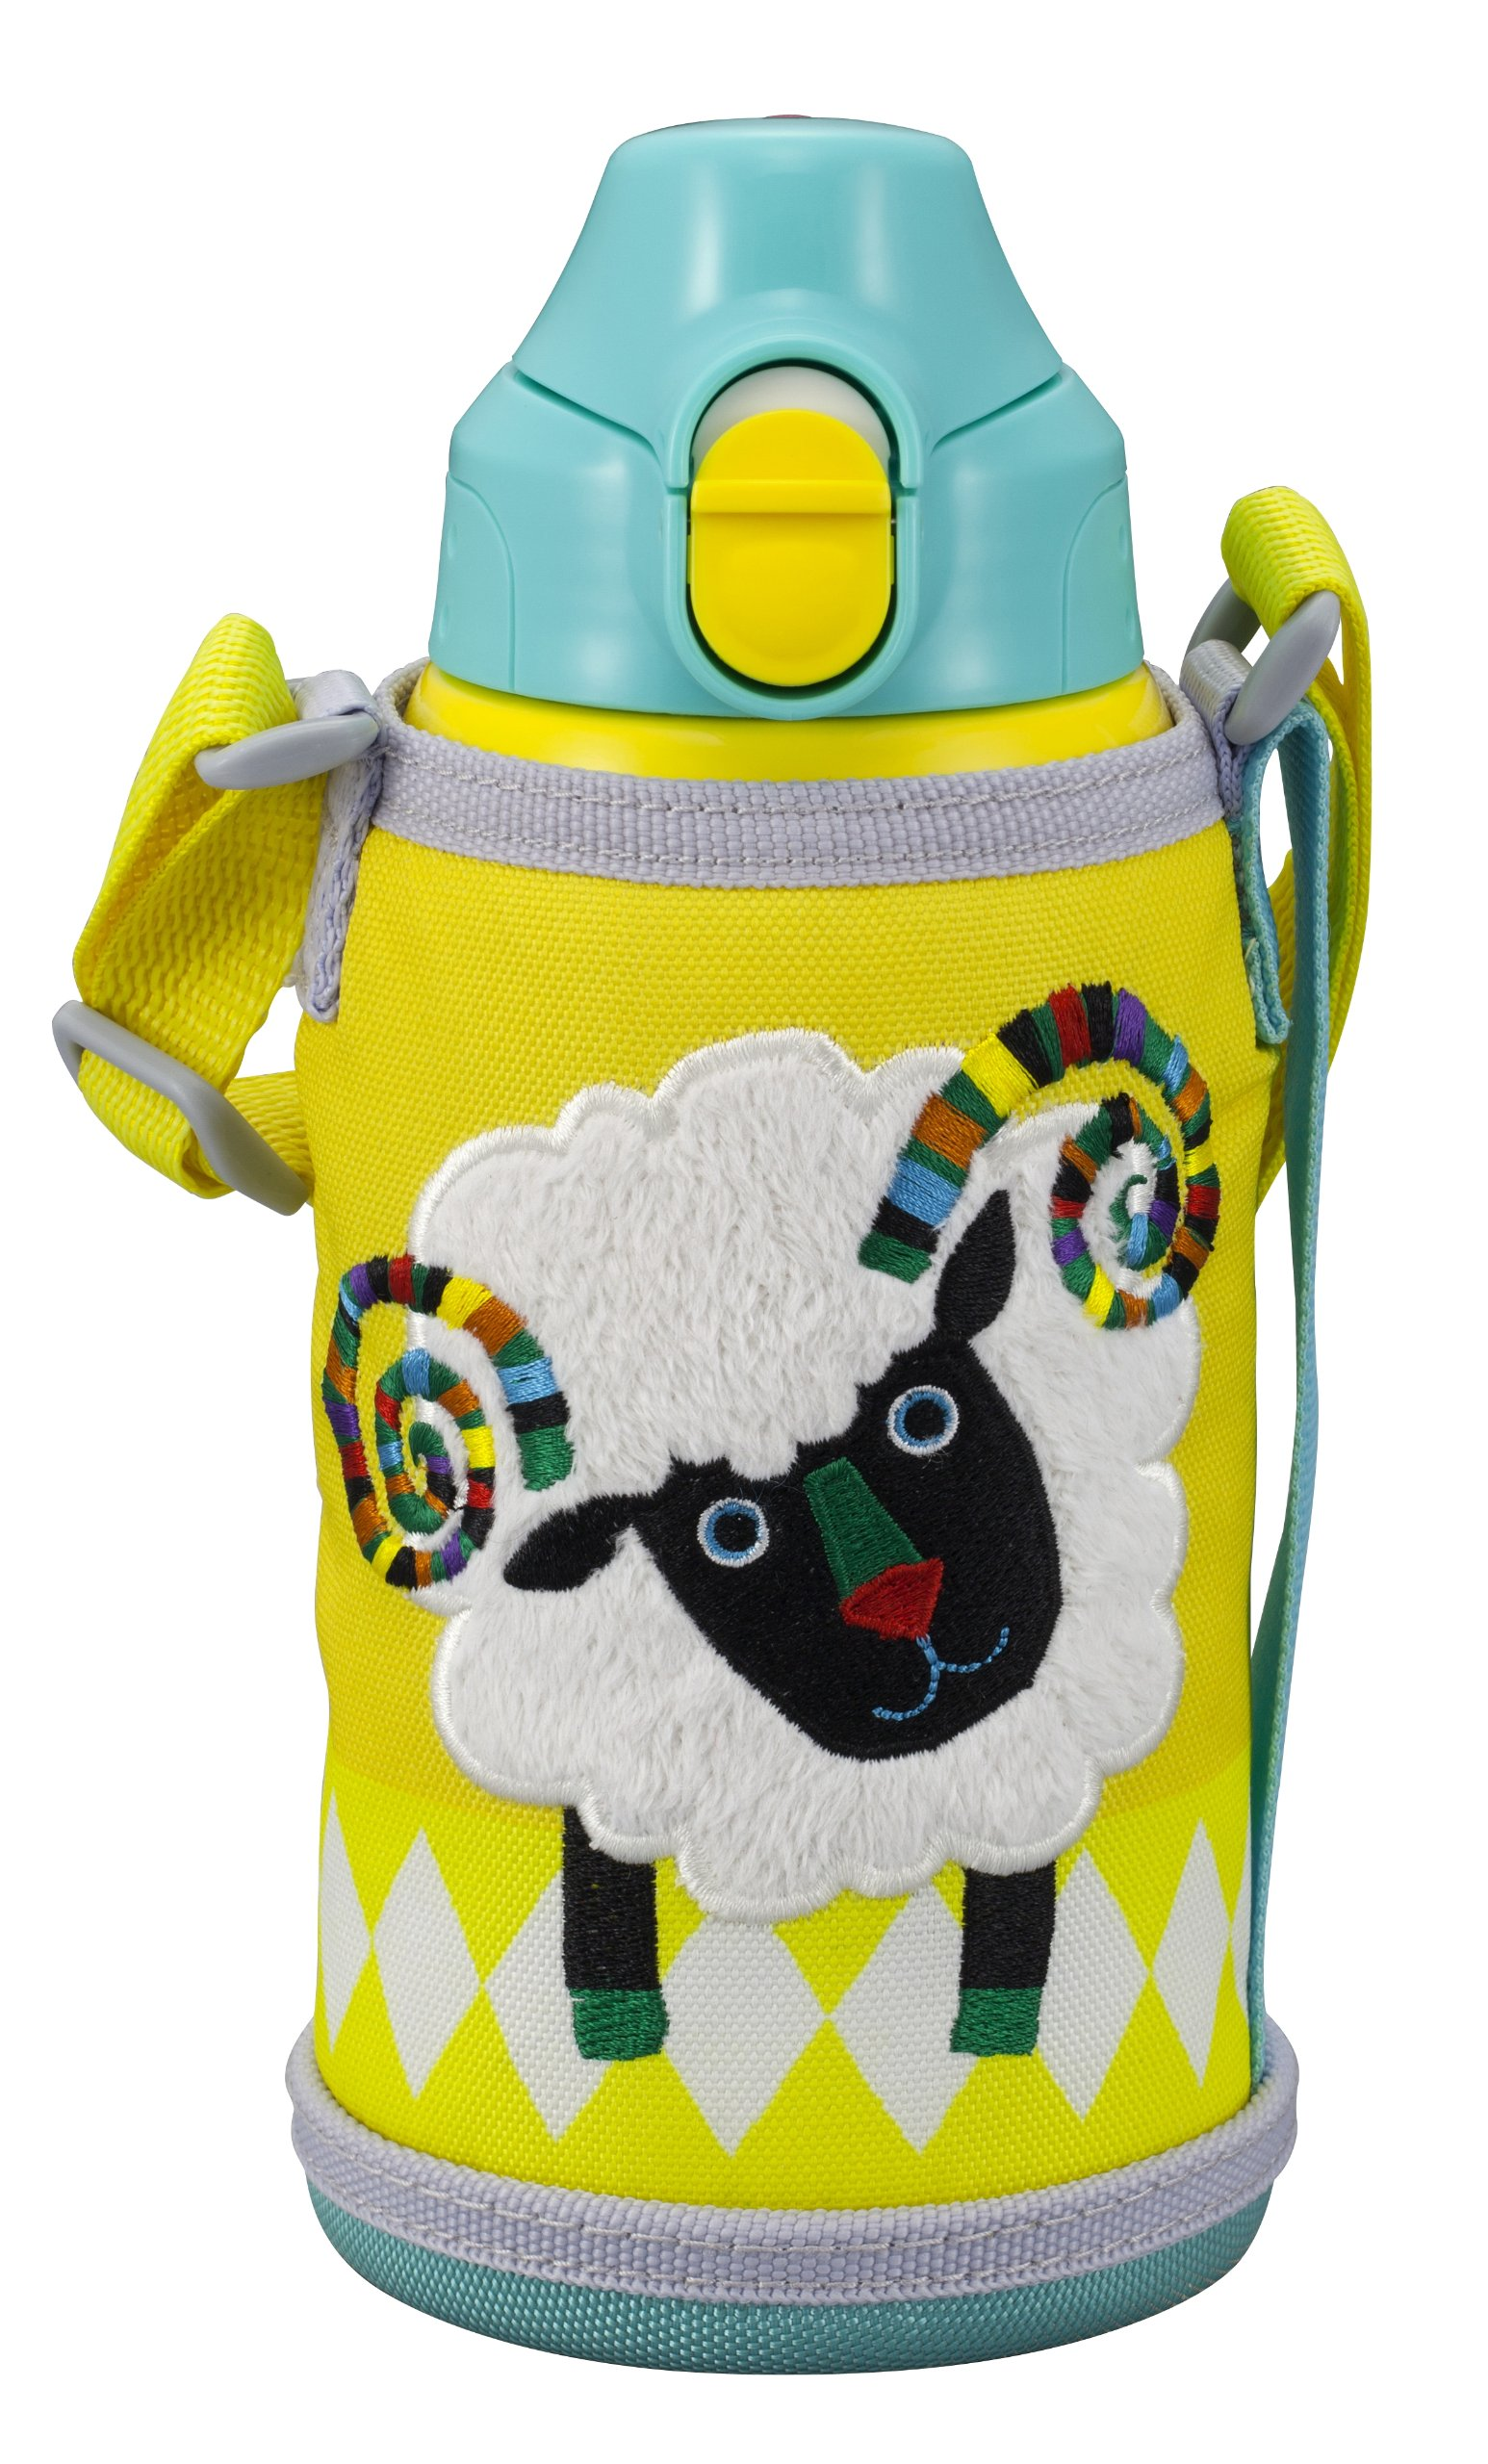 TIGER stainless bottle Sahara 2WAY sheep MBR-A06GY (japan import) by Taigamahobin (TIGER)